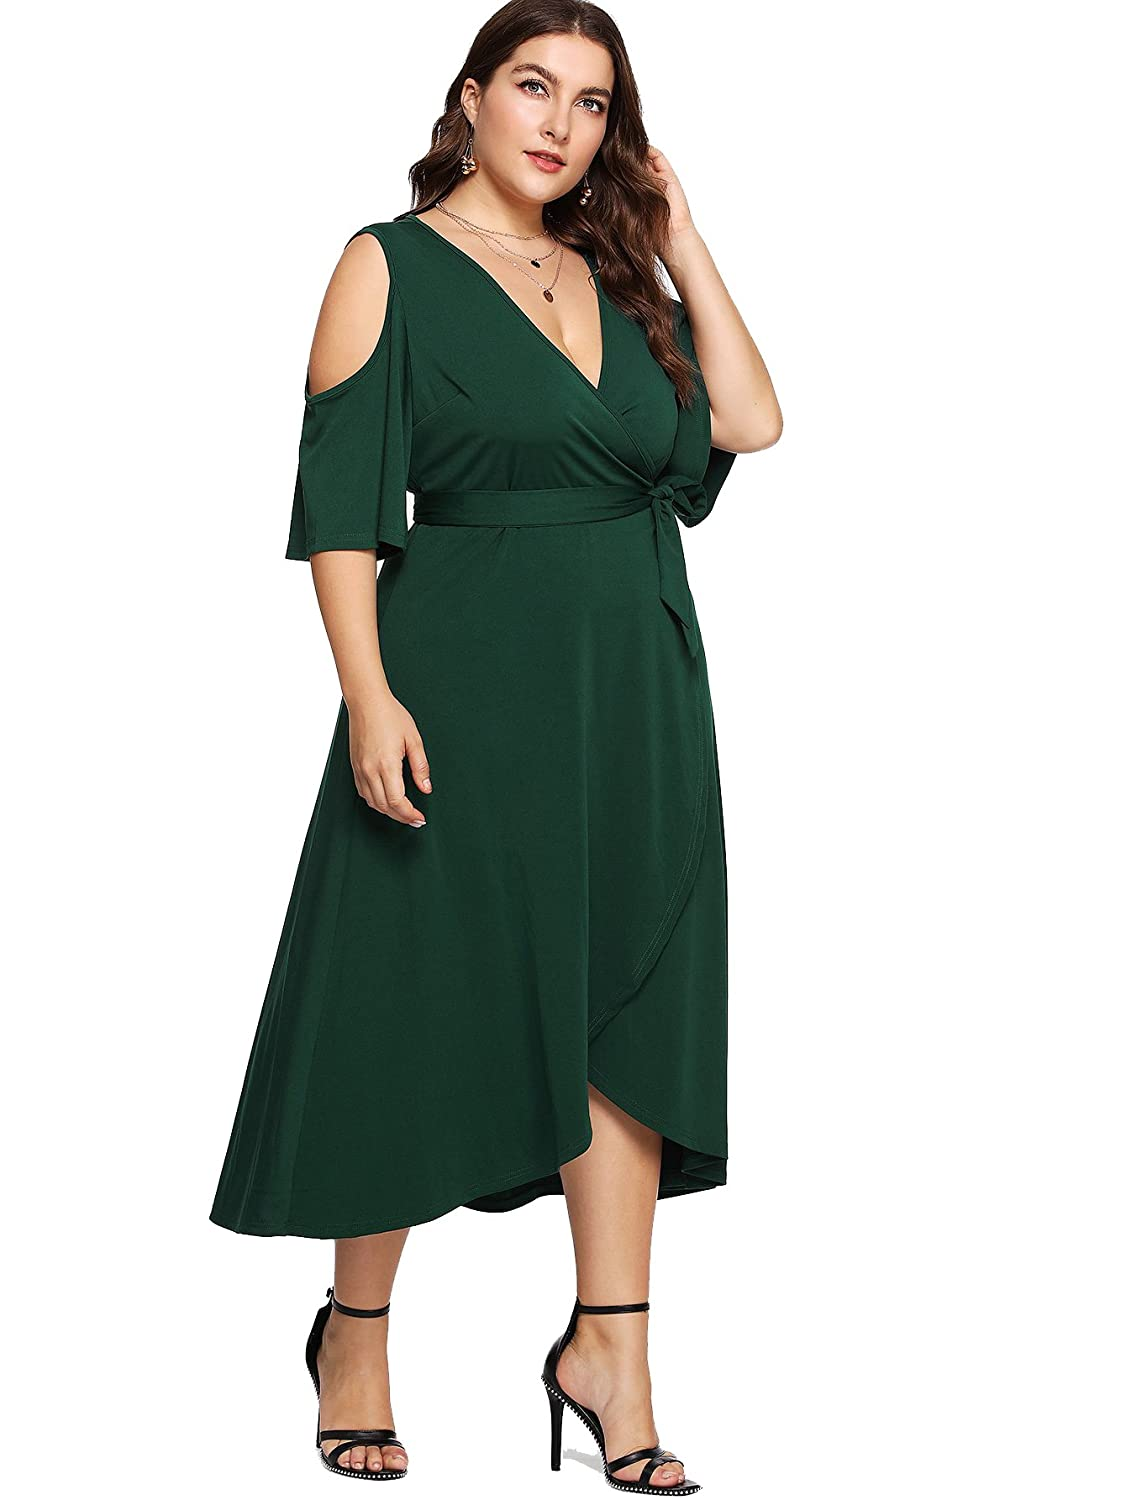 88b37fe36c25 Milumia Plus Size Cold Shoulder Wrap V Neck Empire Waist High Low Summer  Short Sleeves Party Midi Dress at Amazon Women's Clothing store: